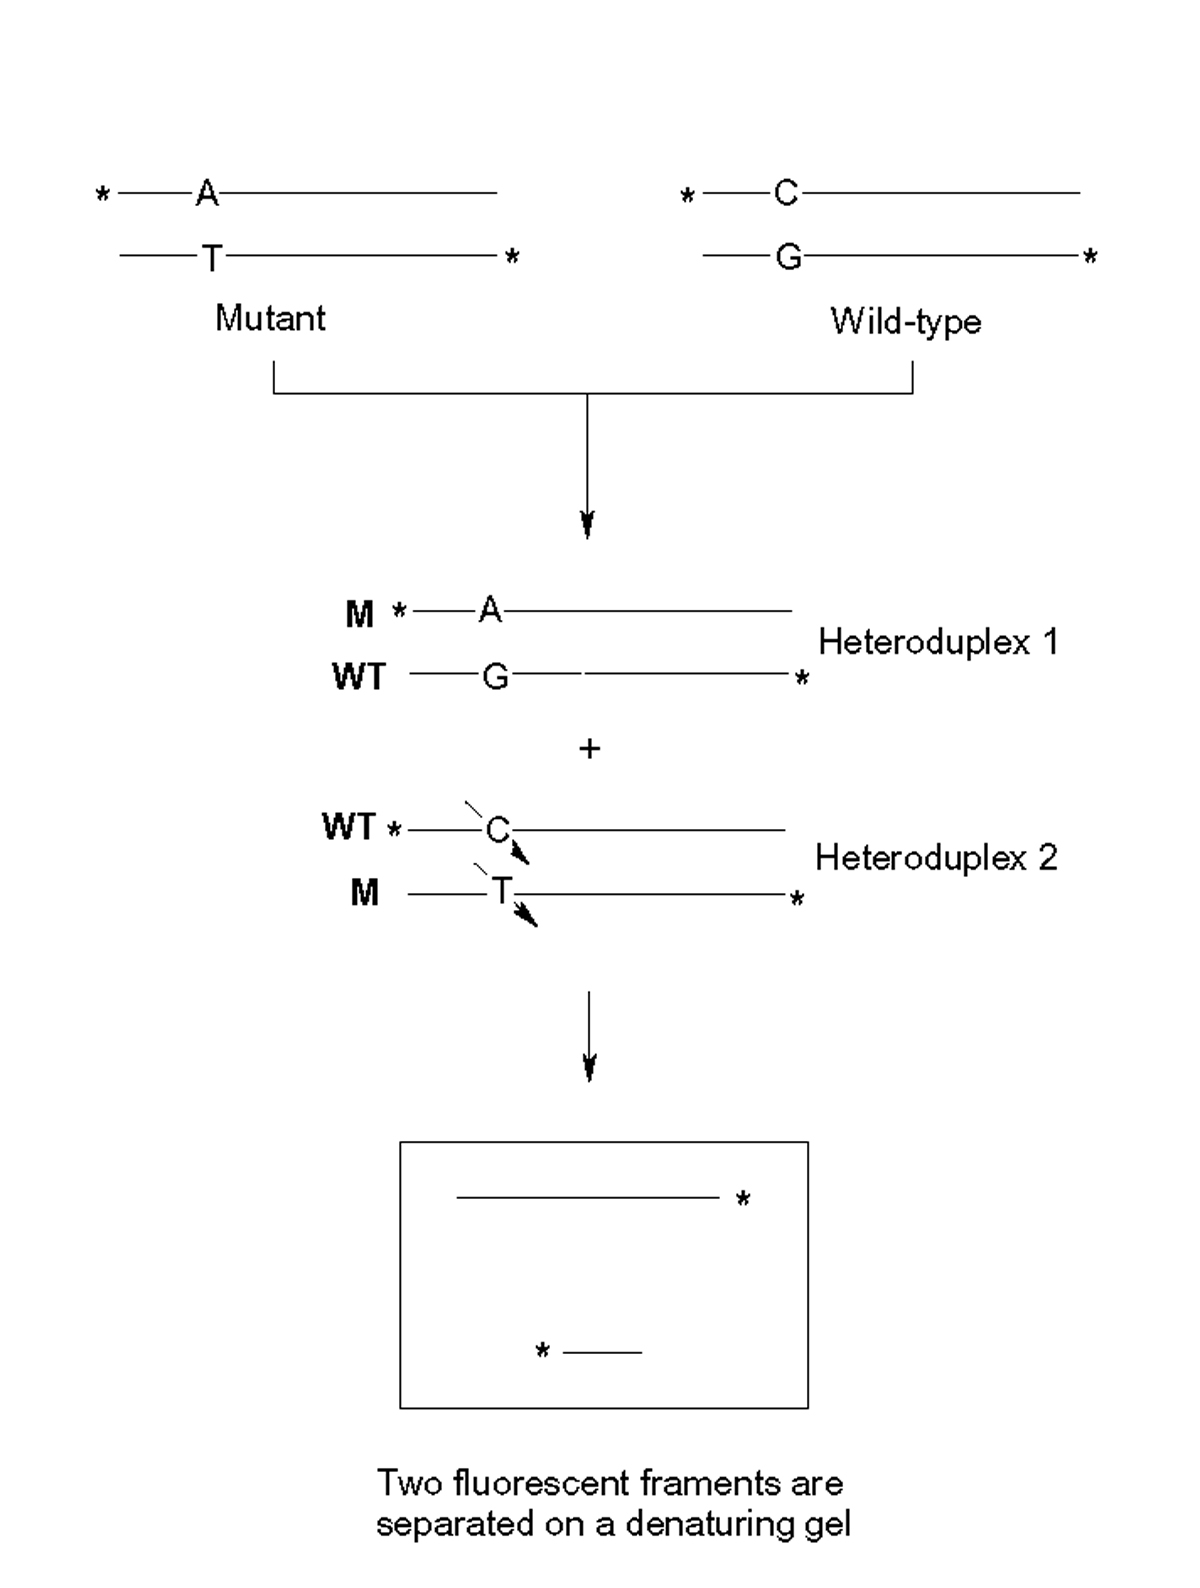 http://static-content.springer.com/image/art%3A10.1186%2F1472-6769-3-1/MediaObjects/12897_2003_Article_6_Fig1_HTML.jpg